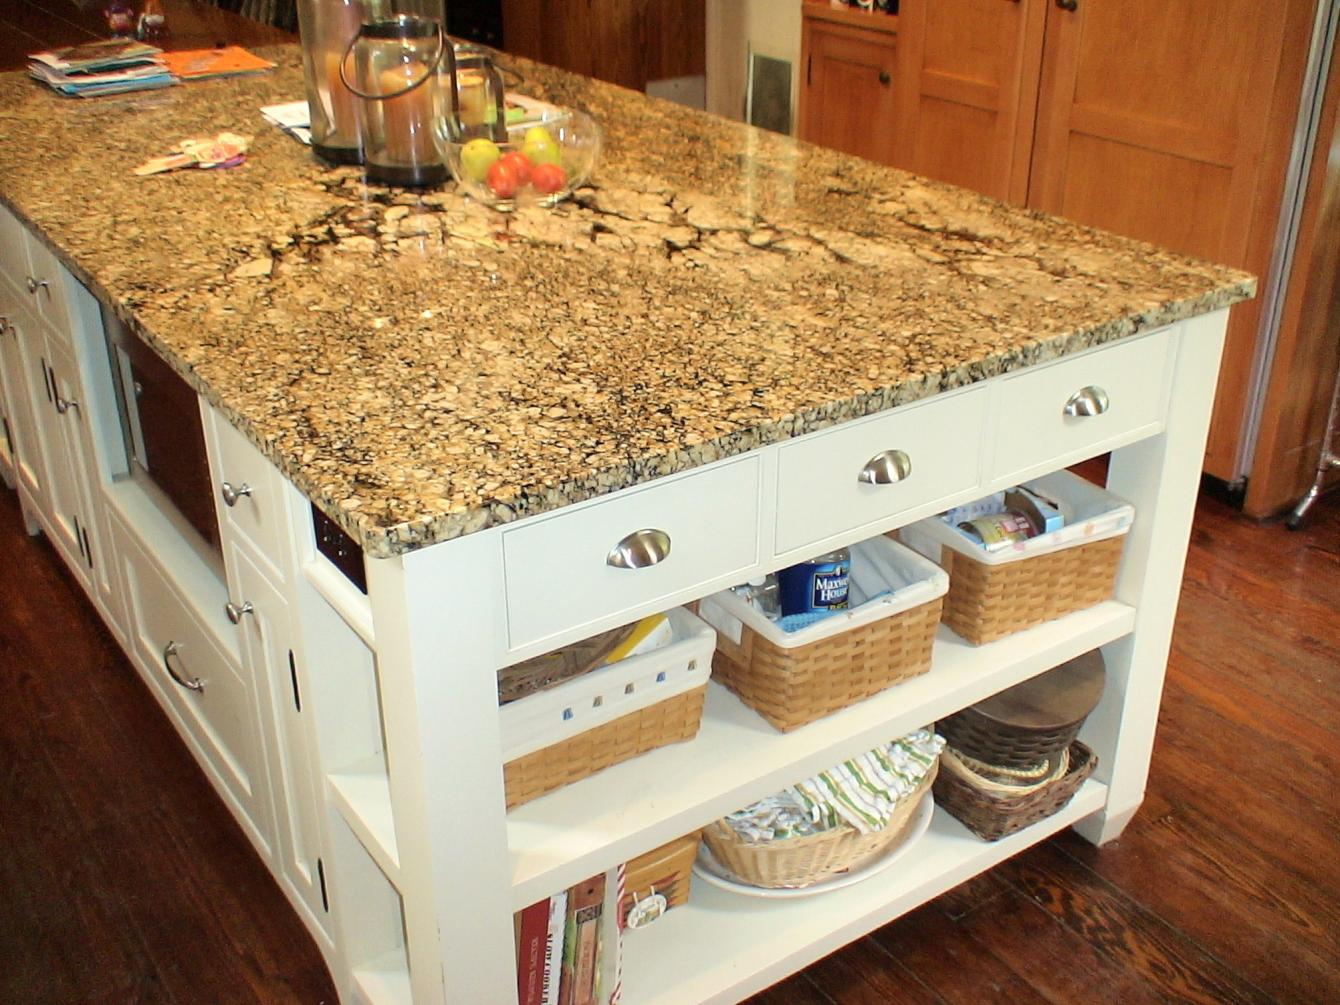 Best Way To Paint Kitchen Cabinet - Painting & Finish Work ...